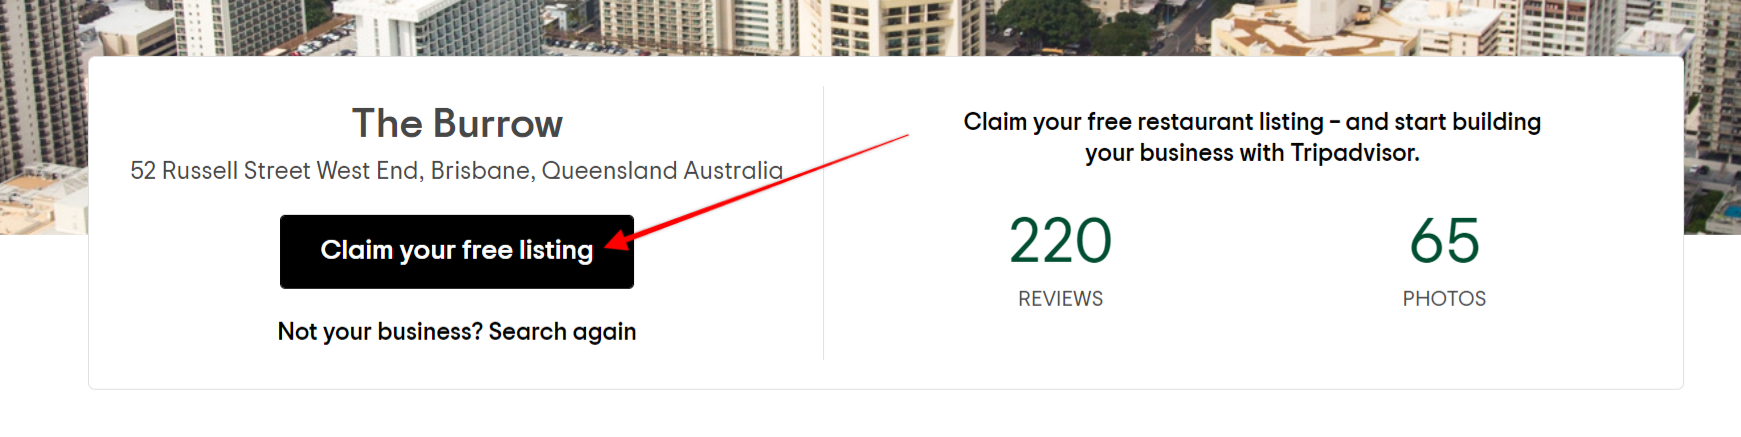 How to claim your TripAdvisor listing